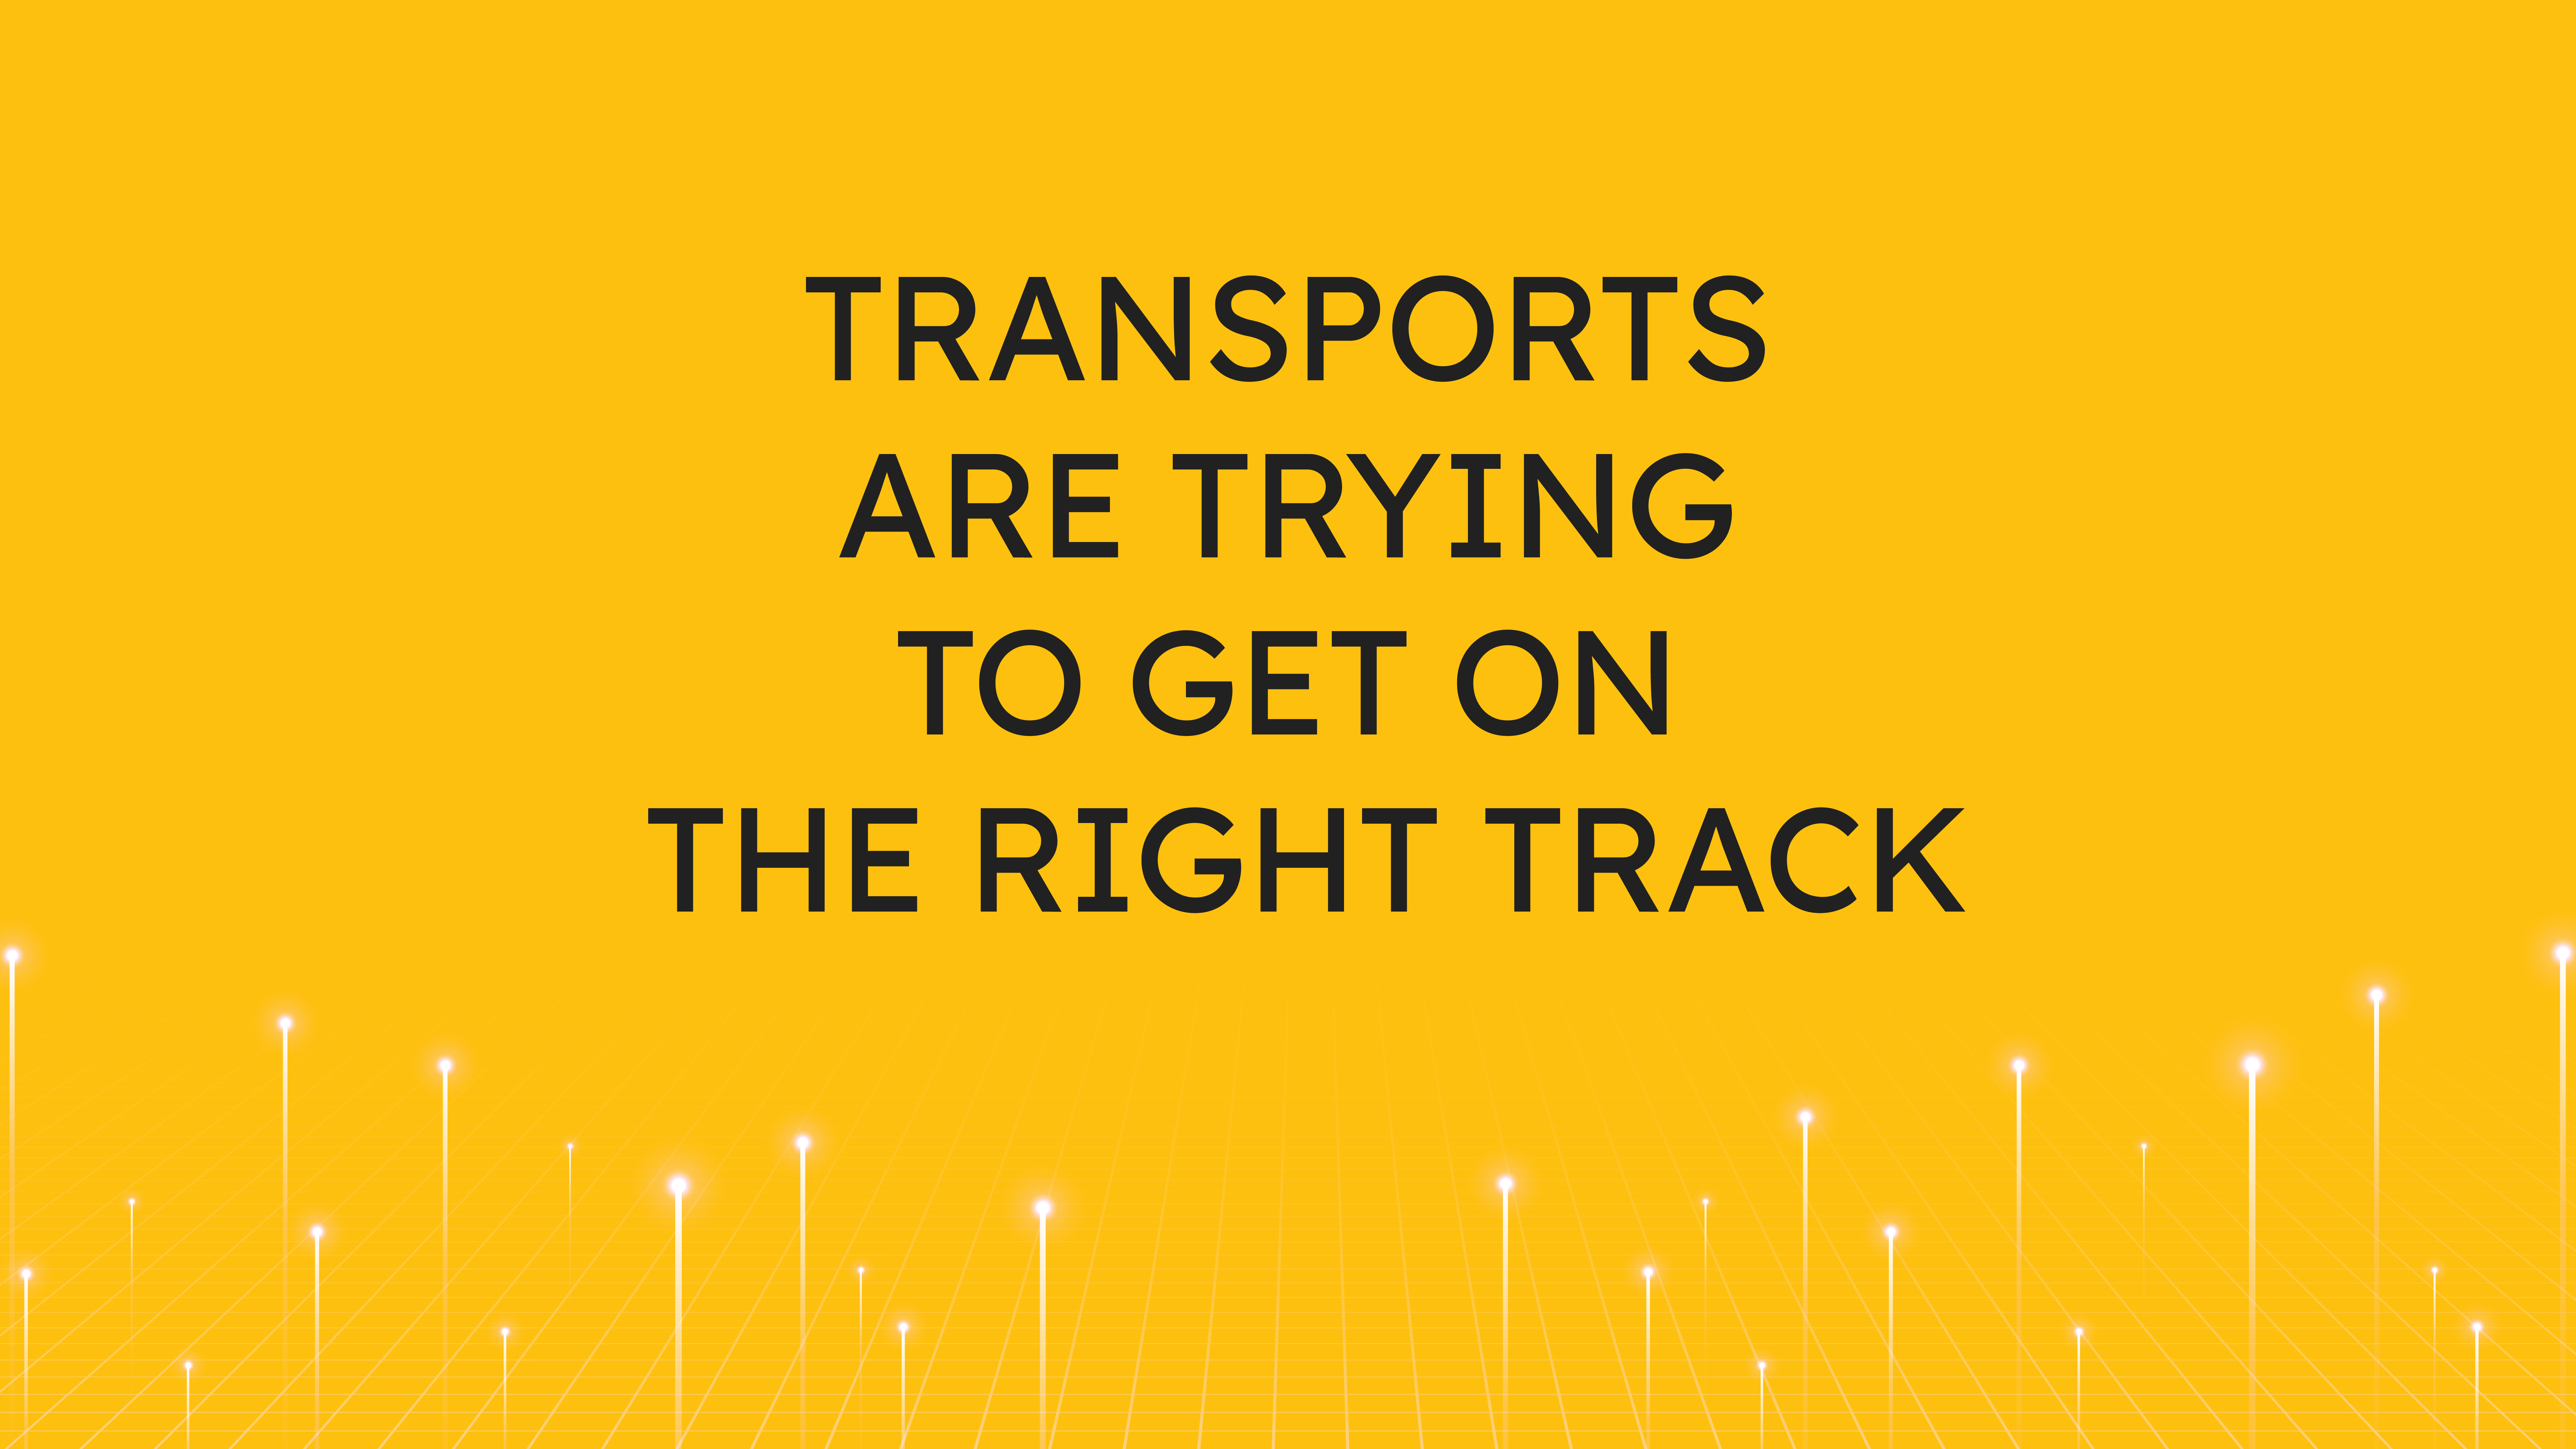 Transports are Trying  to Get on the Right Track